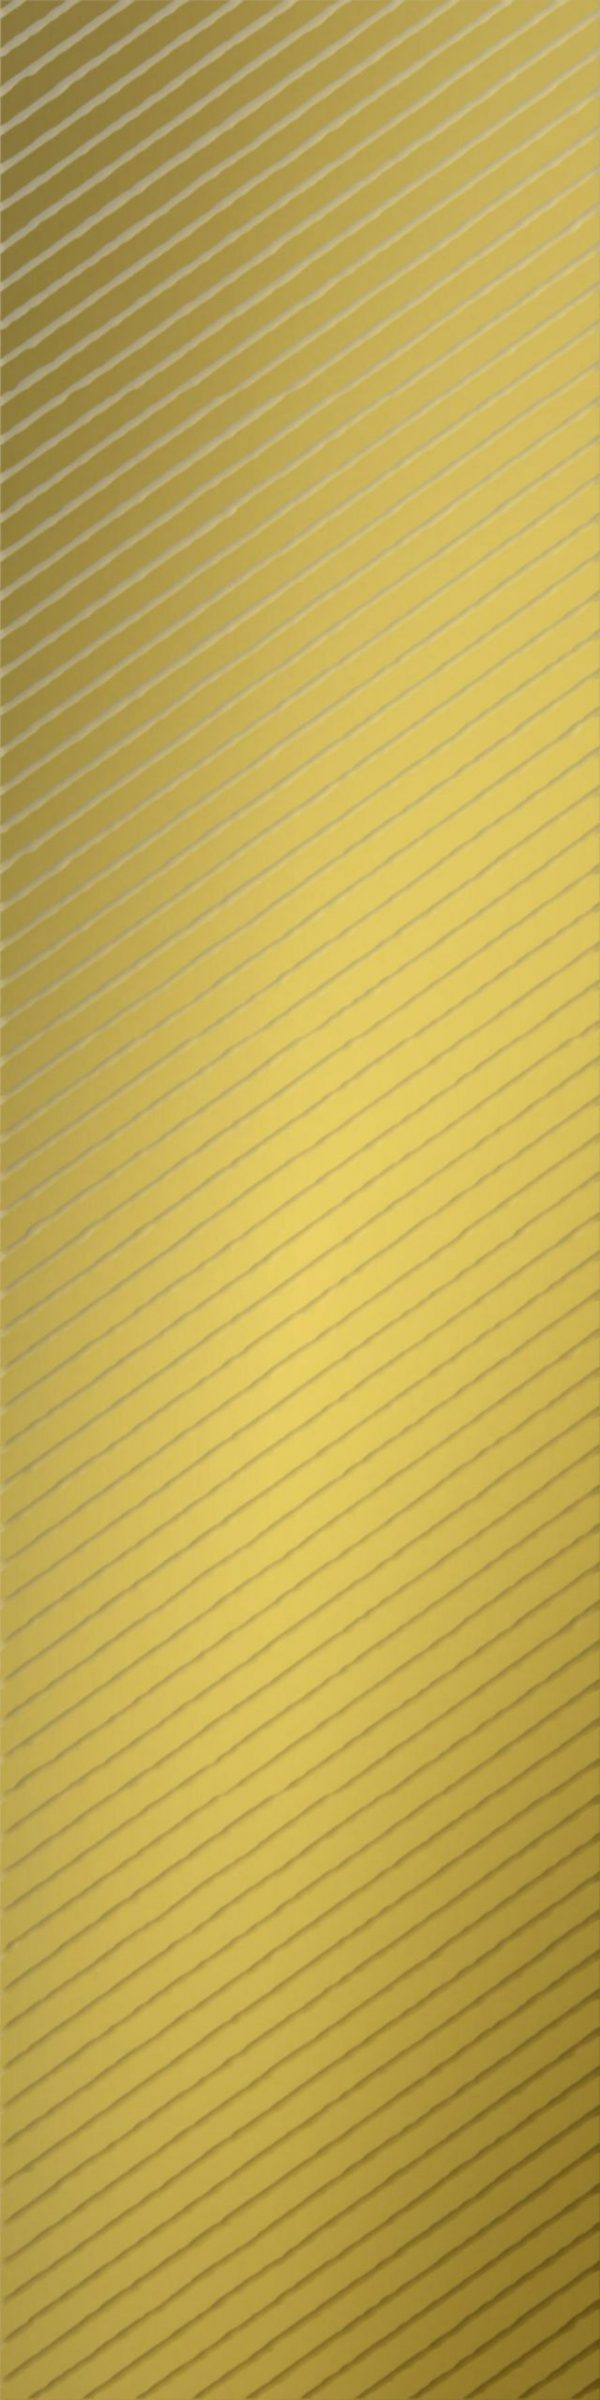 Gradient Decor - Gold Matt